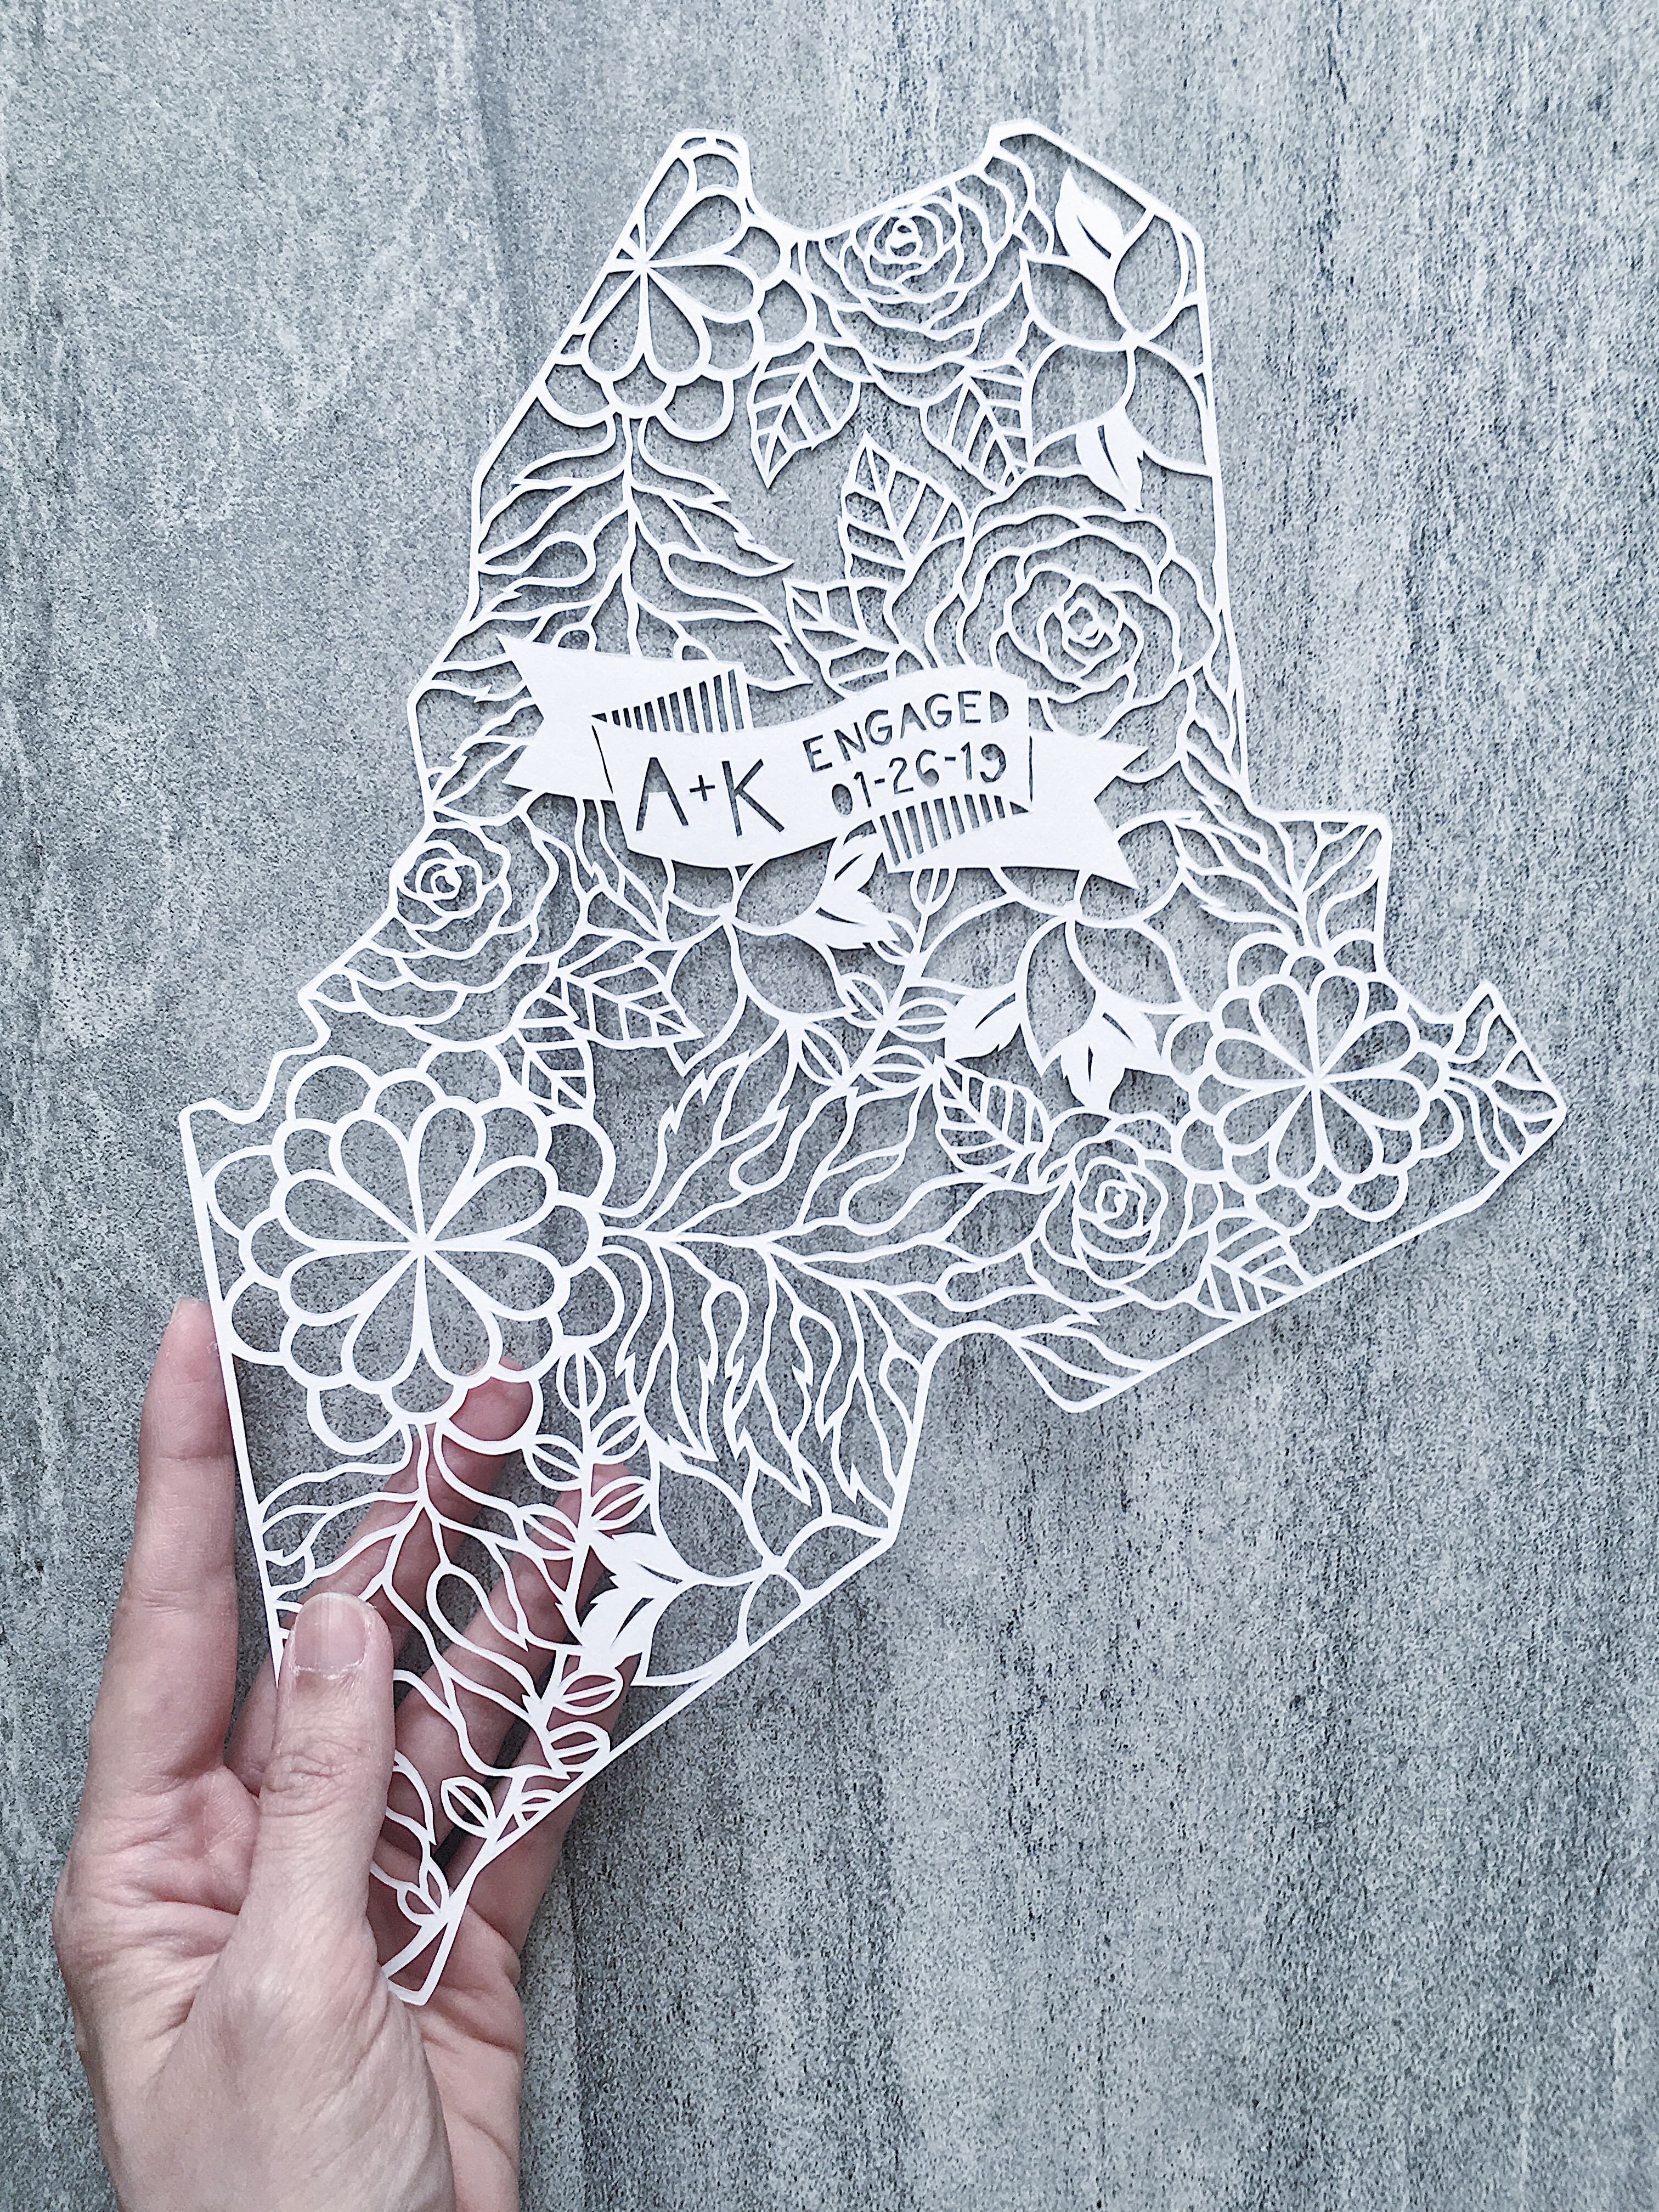 maine-engagement-custom-maine-map-papercut-art-papercutting-engagement-gift-contemporary-art (7)